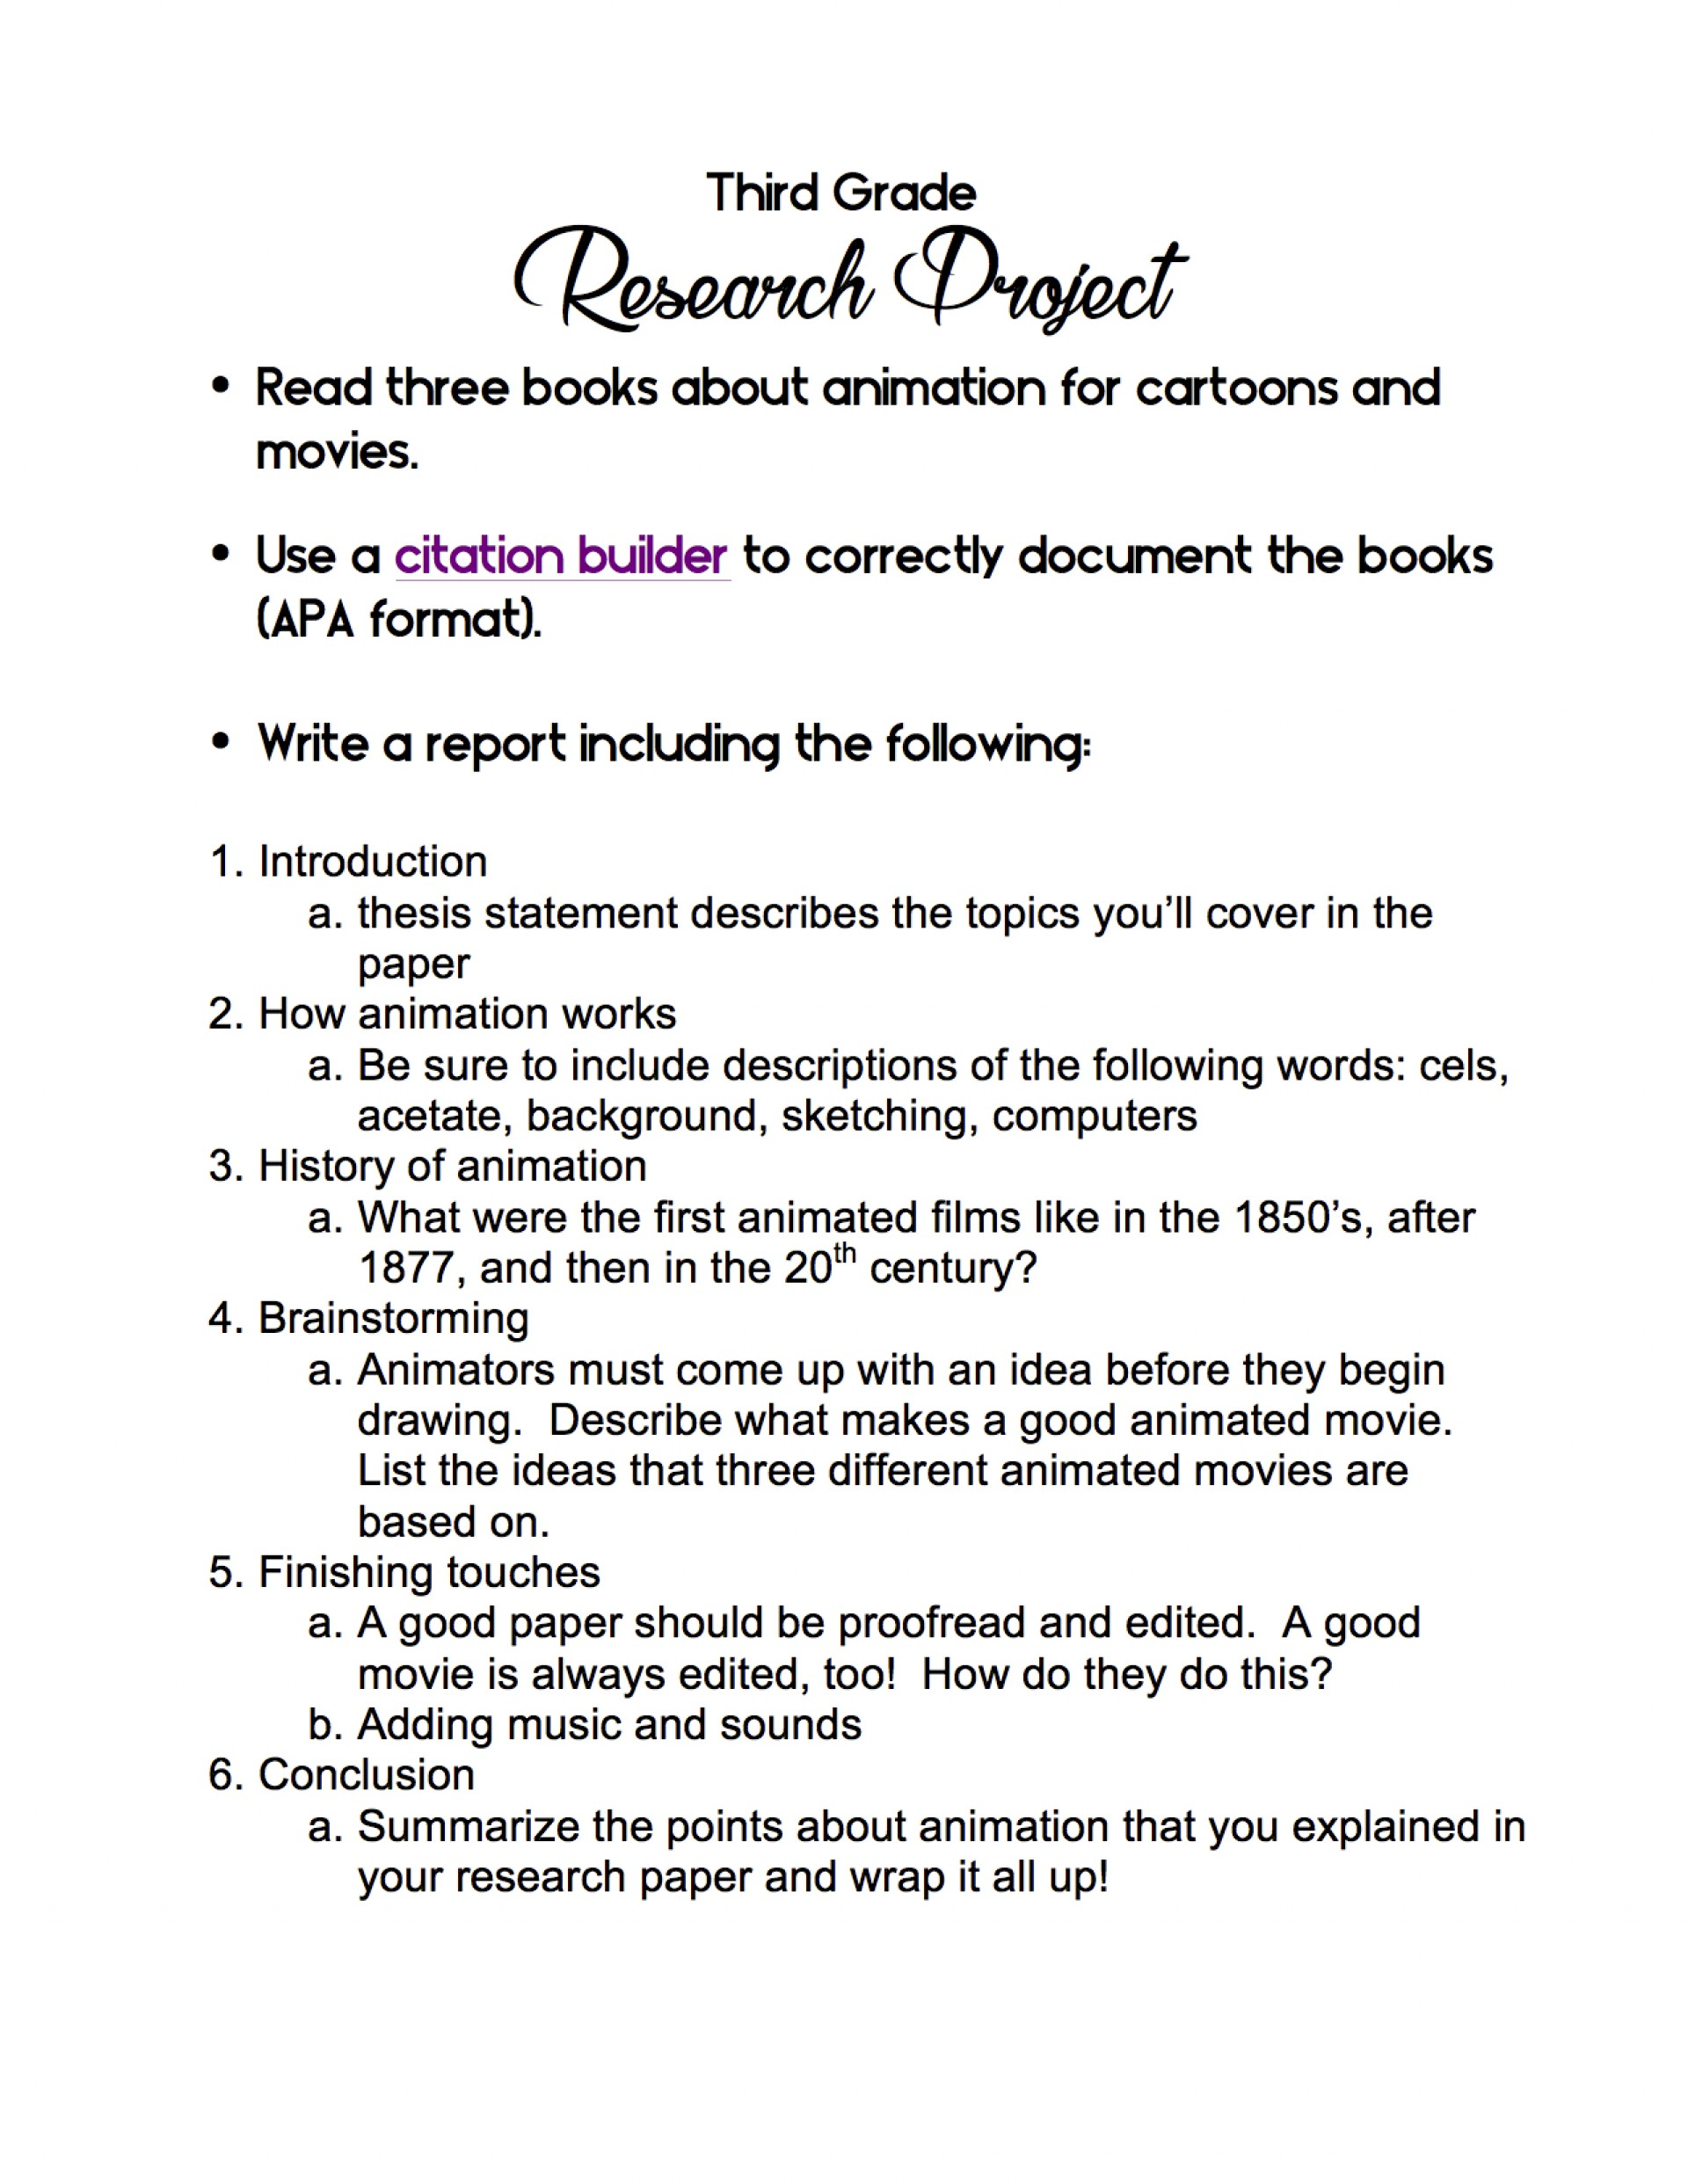 002 Research Paper Cancer Ideas 3rd Grade Shocking Breast Topic 1920